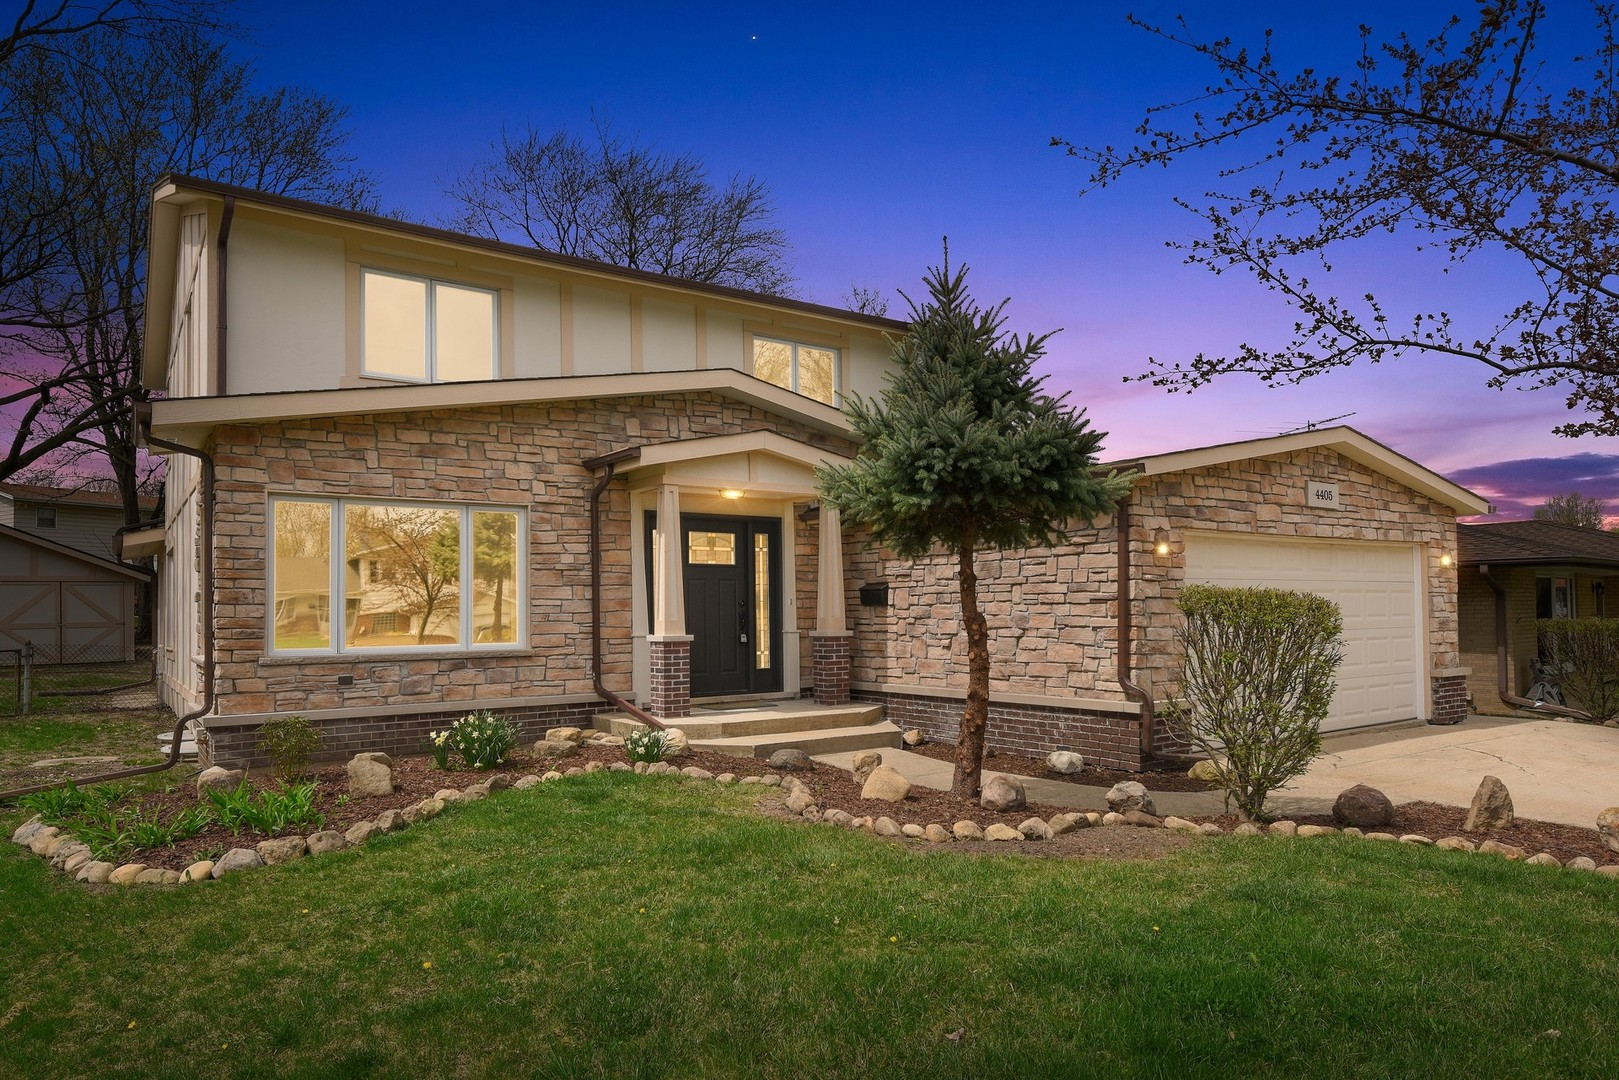 Photo of 4405 Sycamore Lane Rolling Meadows Illinois 60008